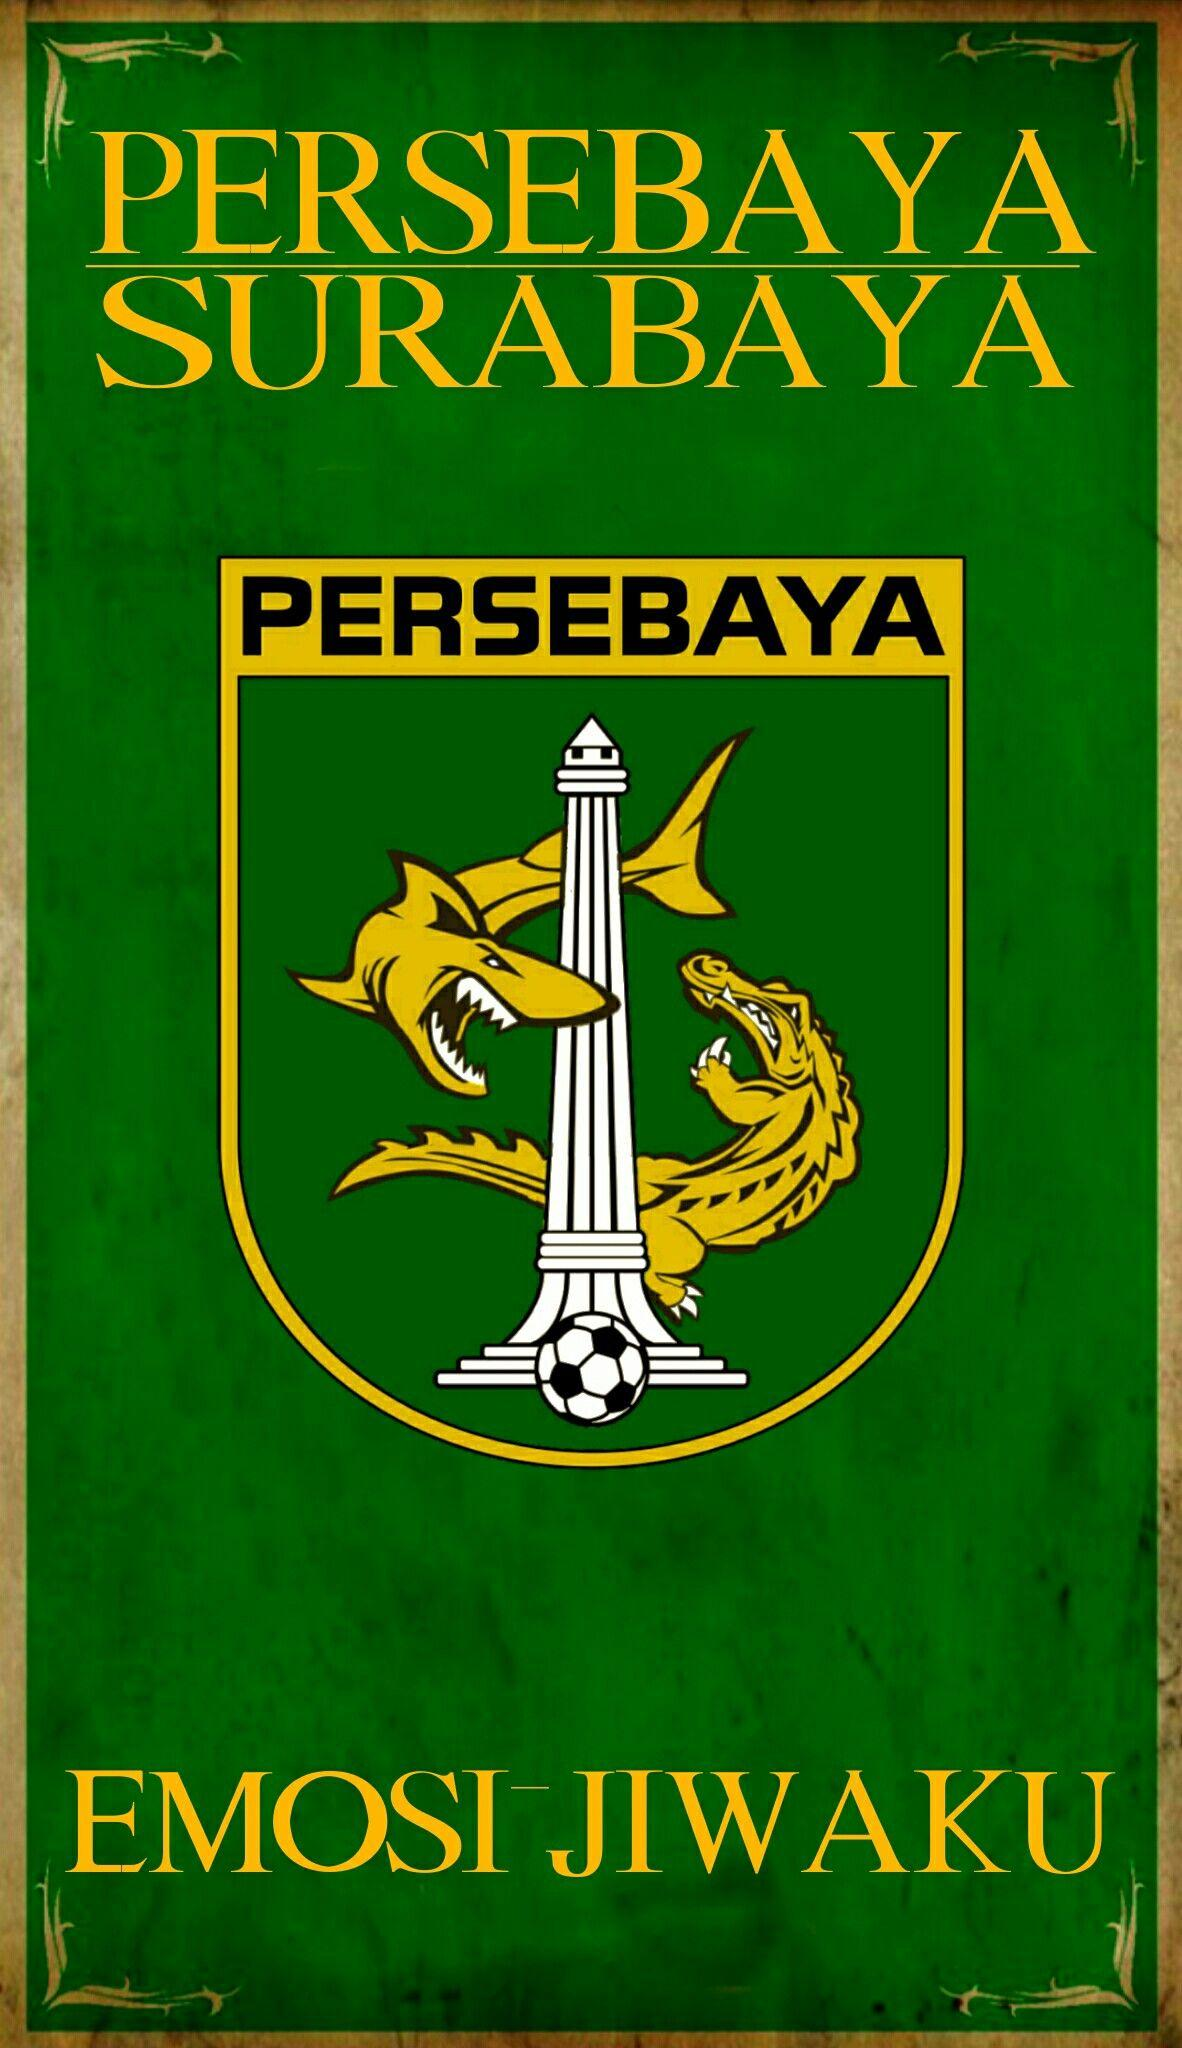 Persebaya Surabaya Wallpapers - Wallpaper Cave